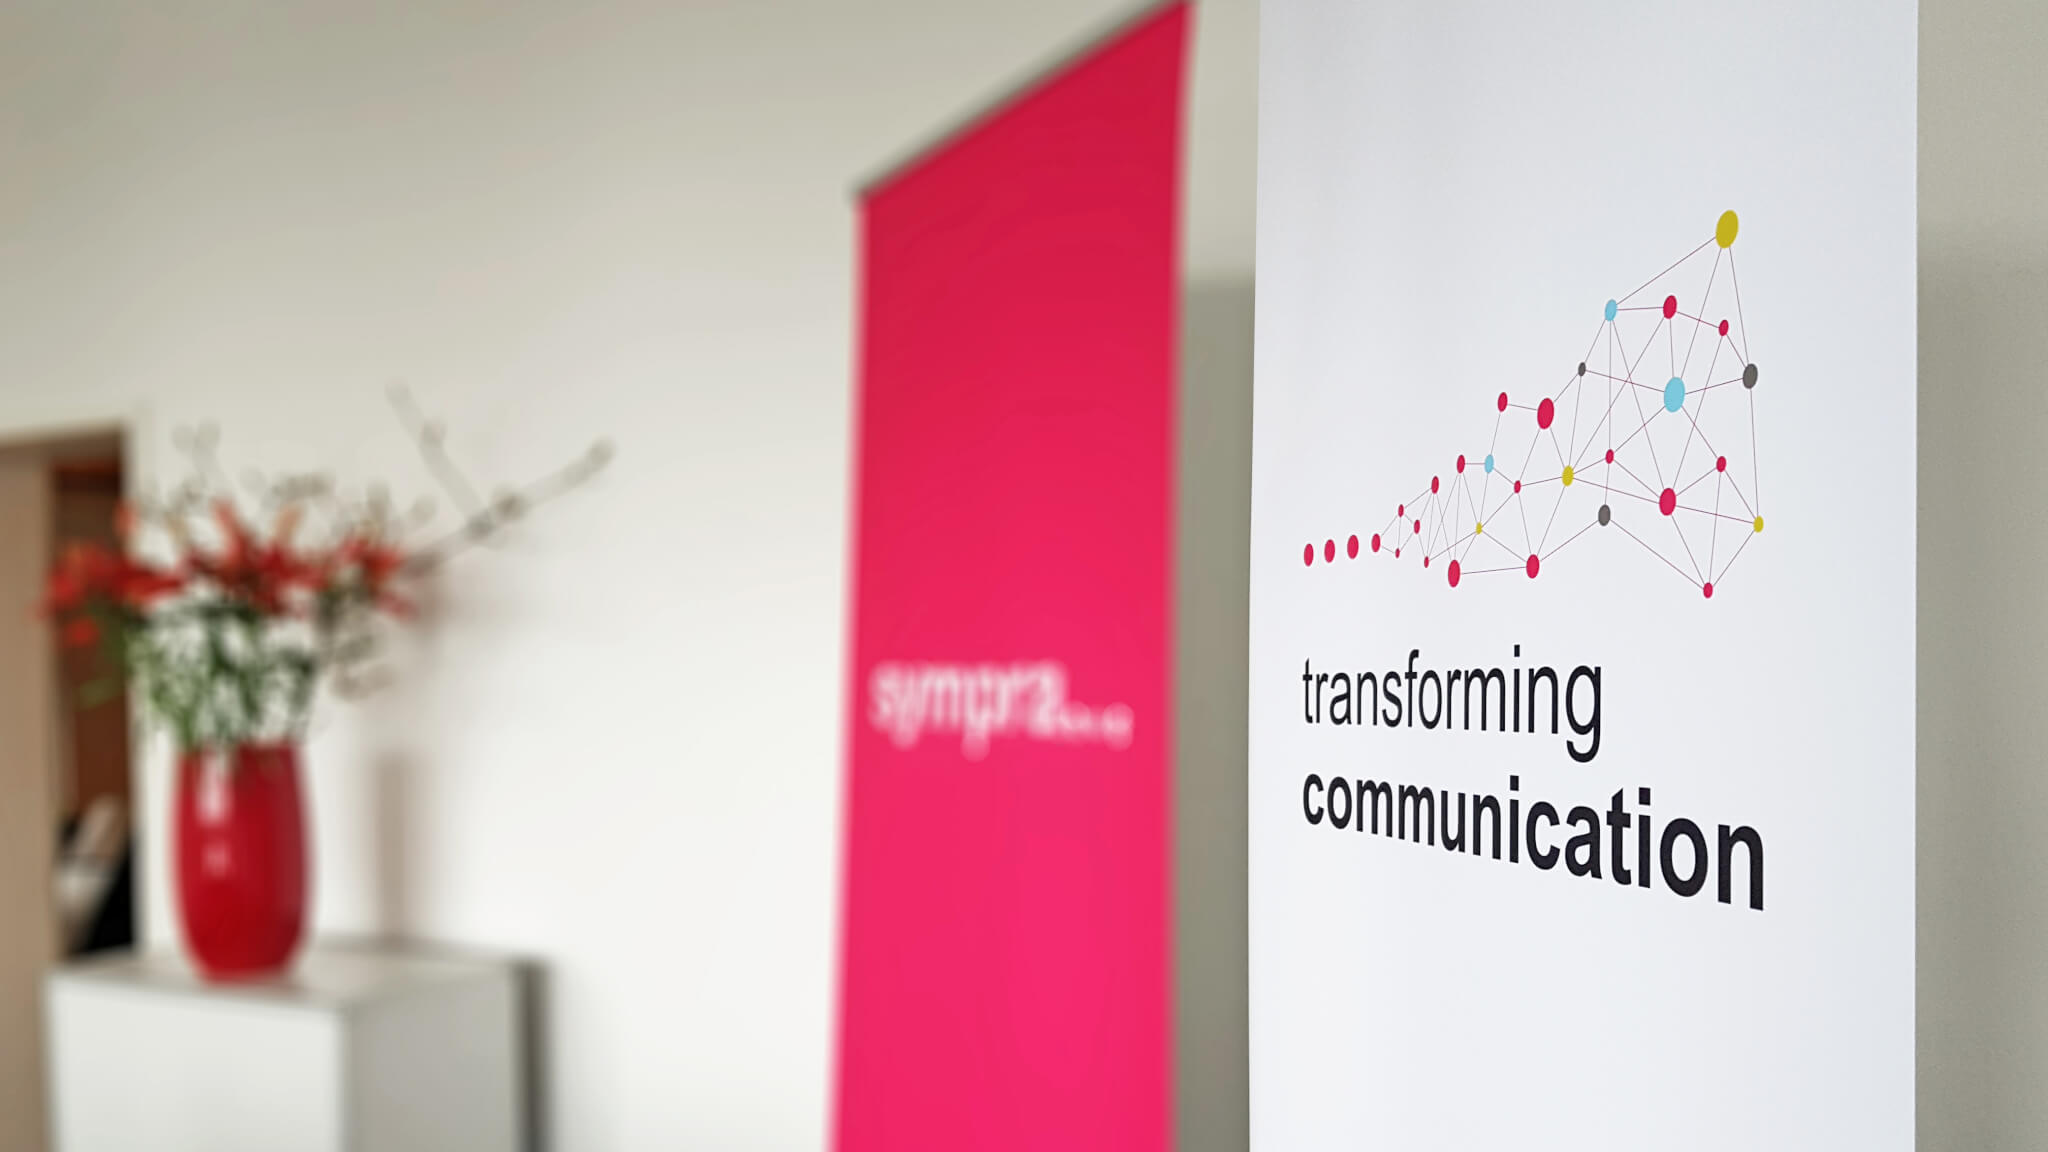 Transforming Communication – It's up to Us